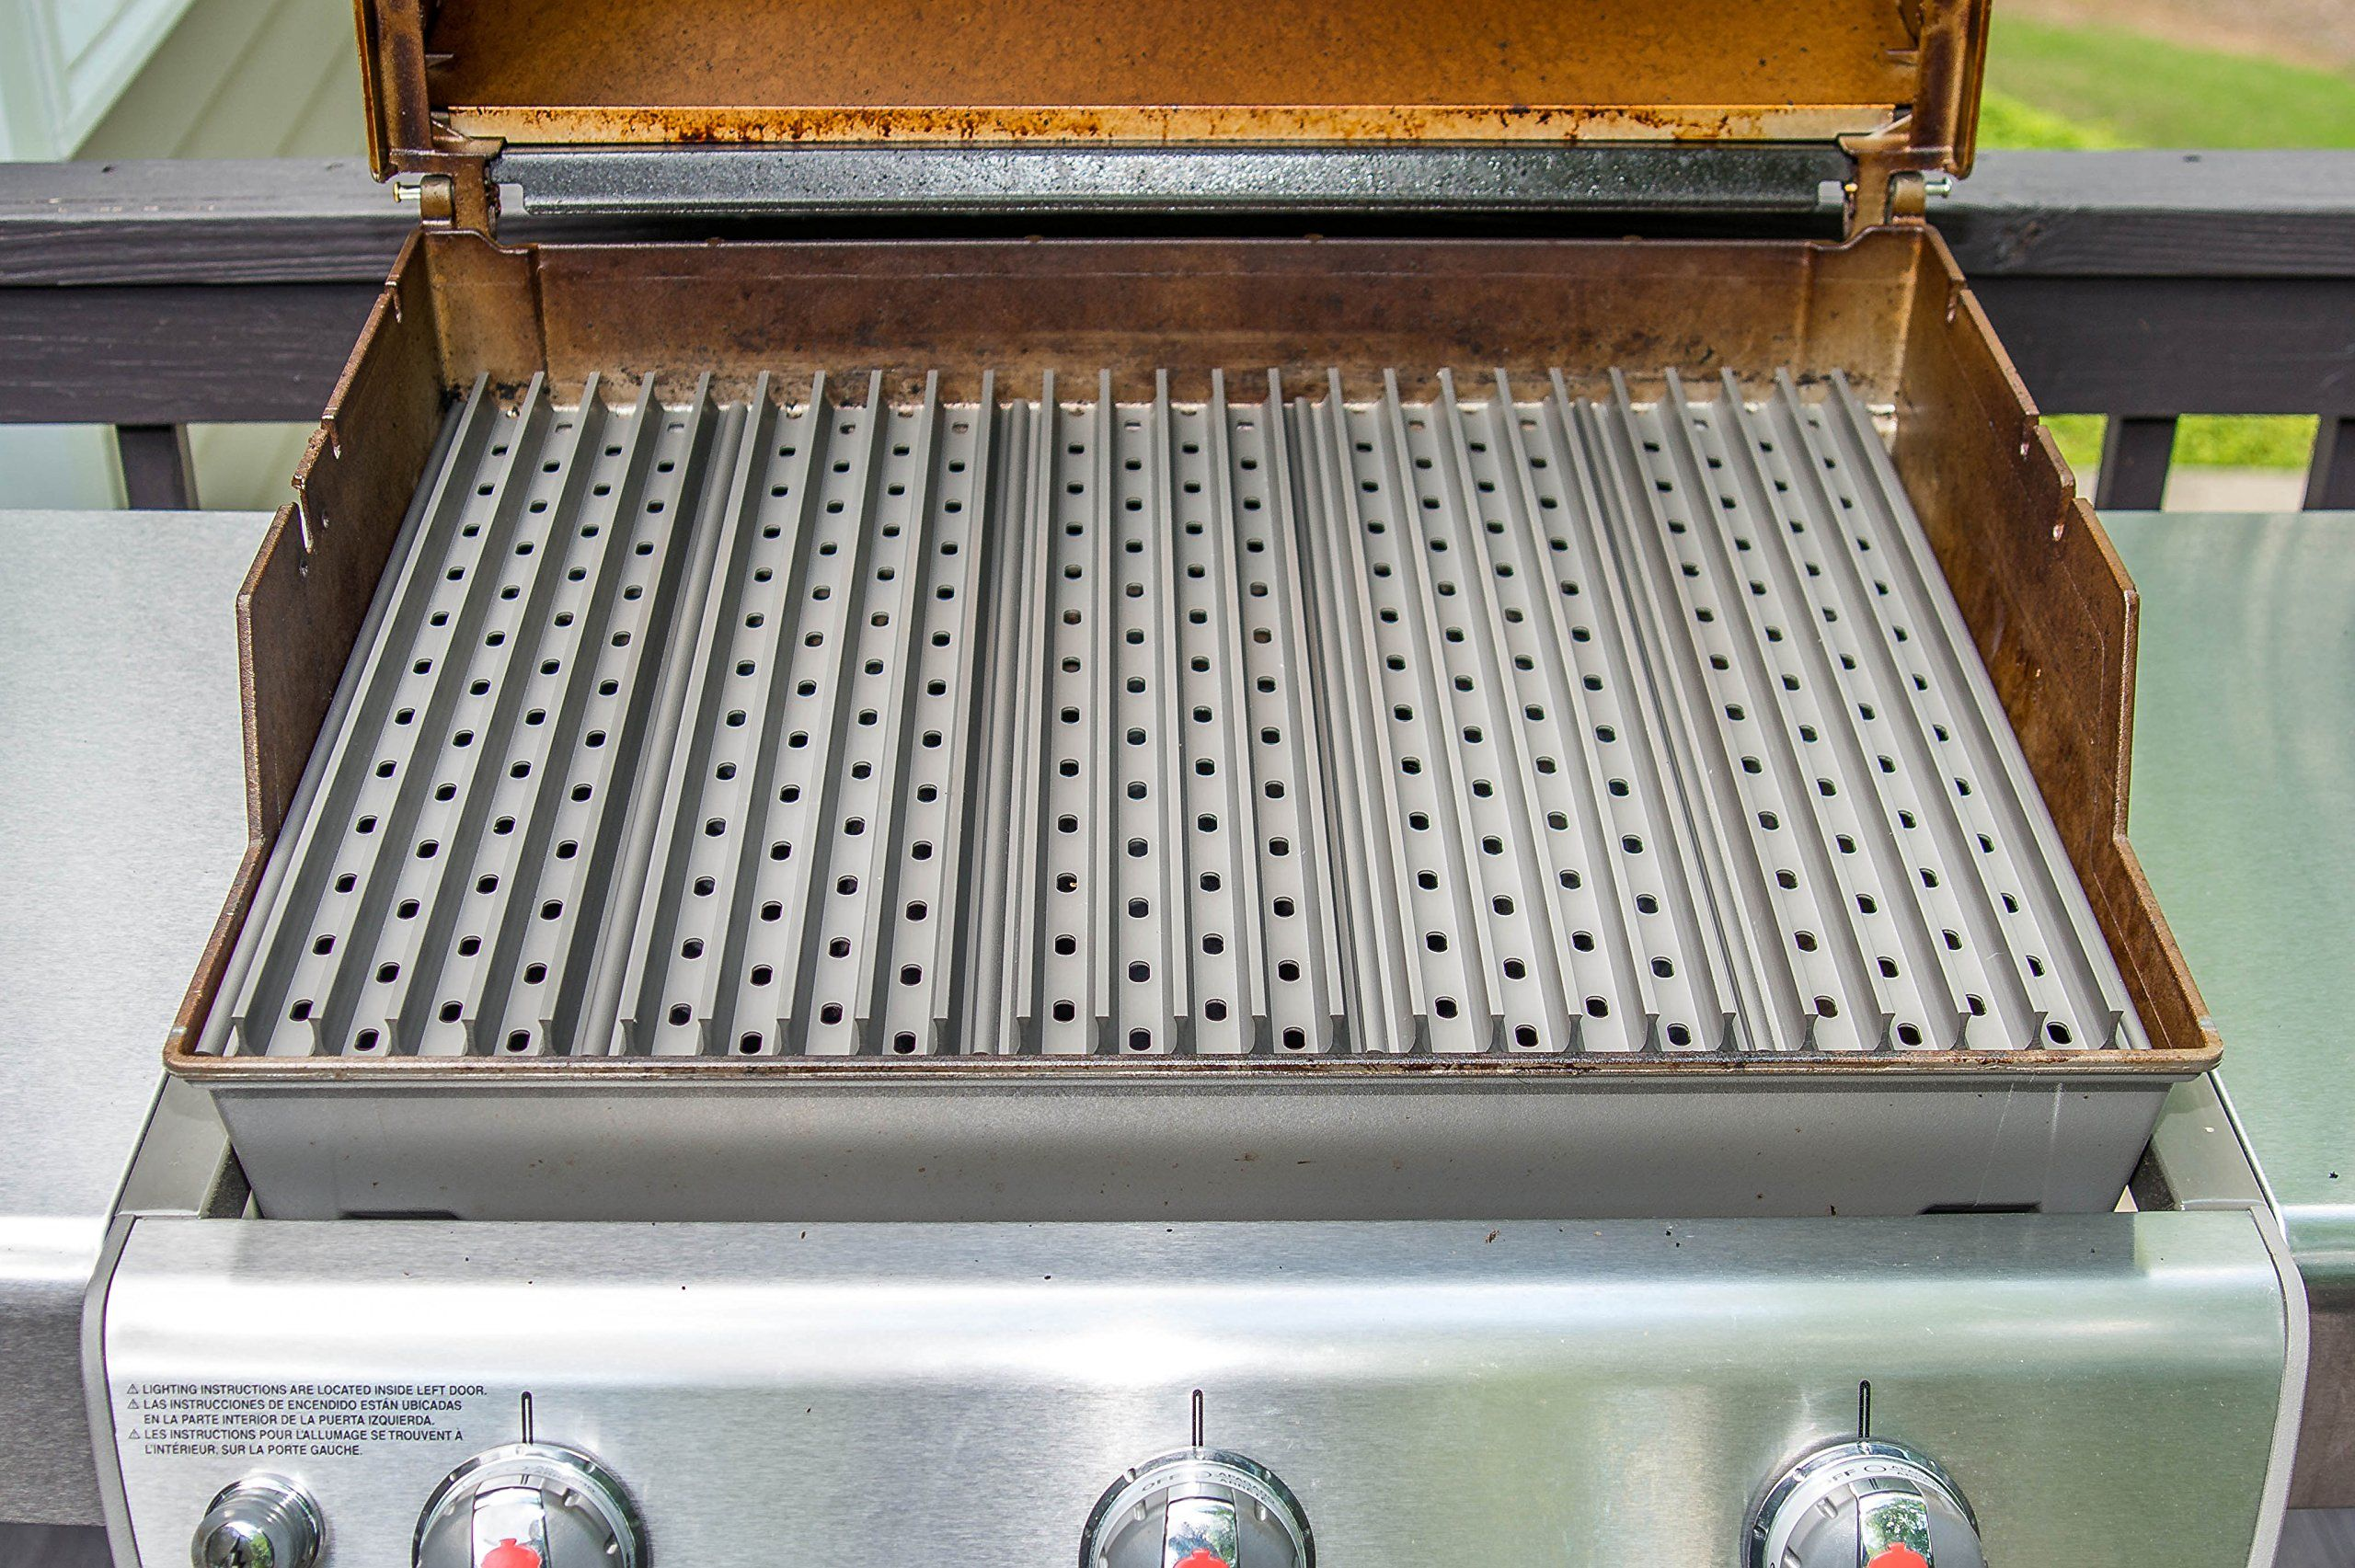 Grillgrate Replacement Grate Set Custom Sized For Weber Genesis Grills Backyard Kitchen Grilling Outdoor Kitchen Cabinets